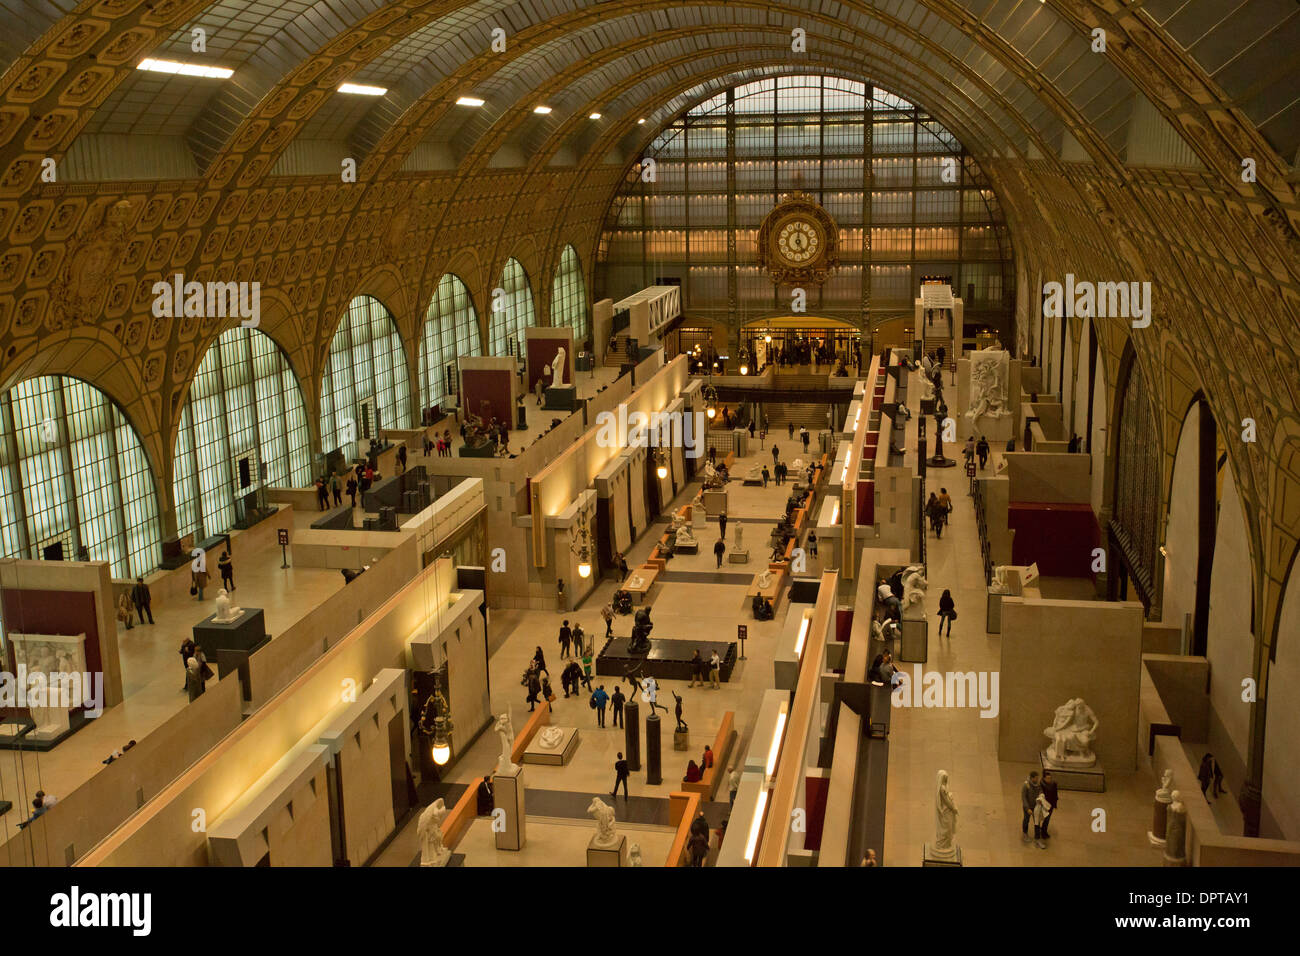 Inside the Musee d'orsay, Orsay Museum, built inside an old railway station, Paris, France. - Stock Image